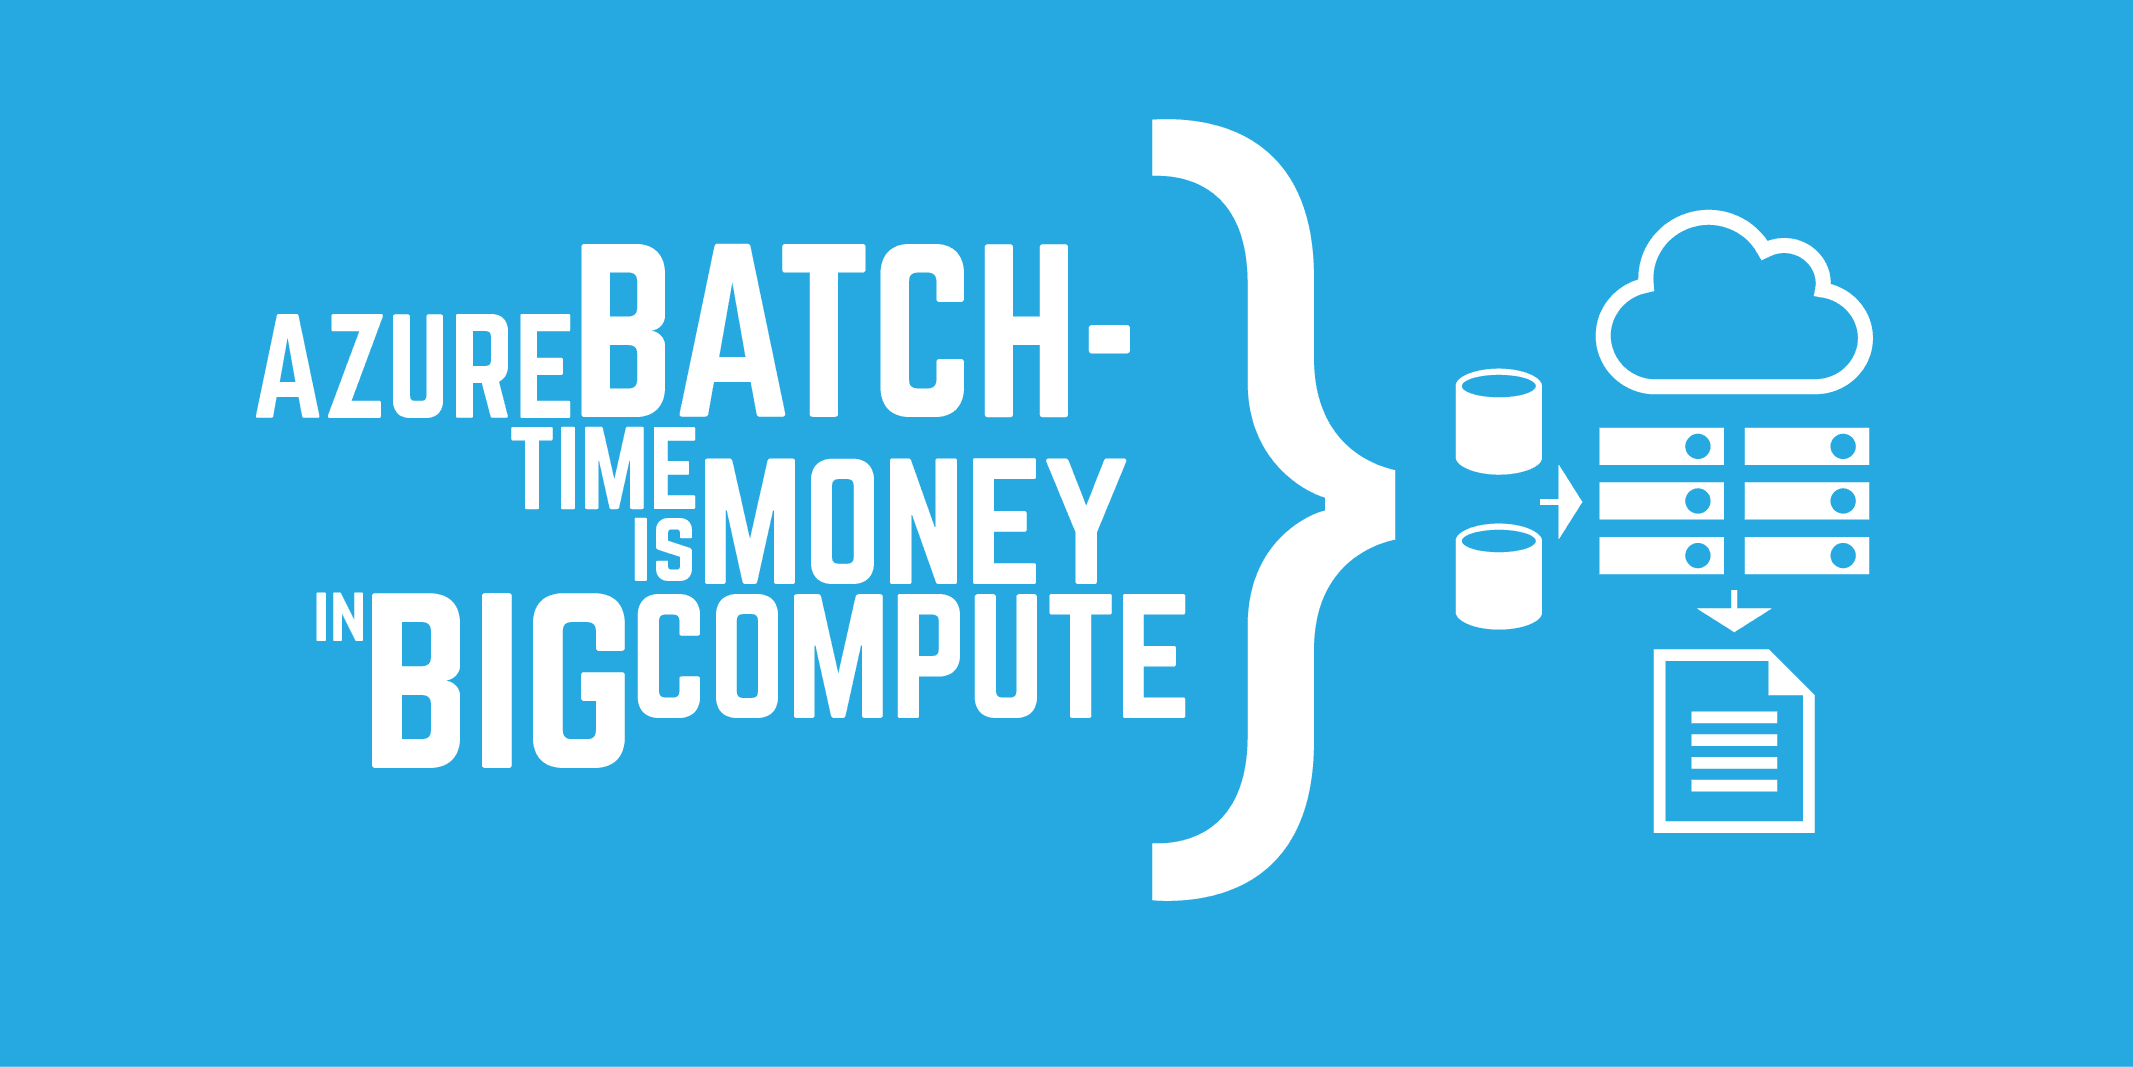 Azure Batch - Time is Money in Big Compute